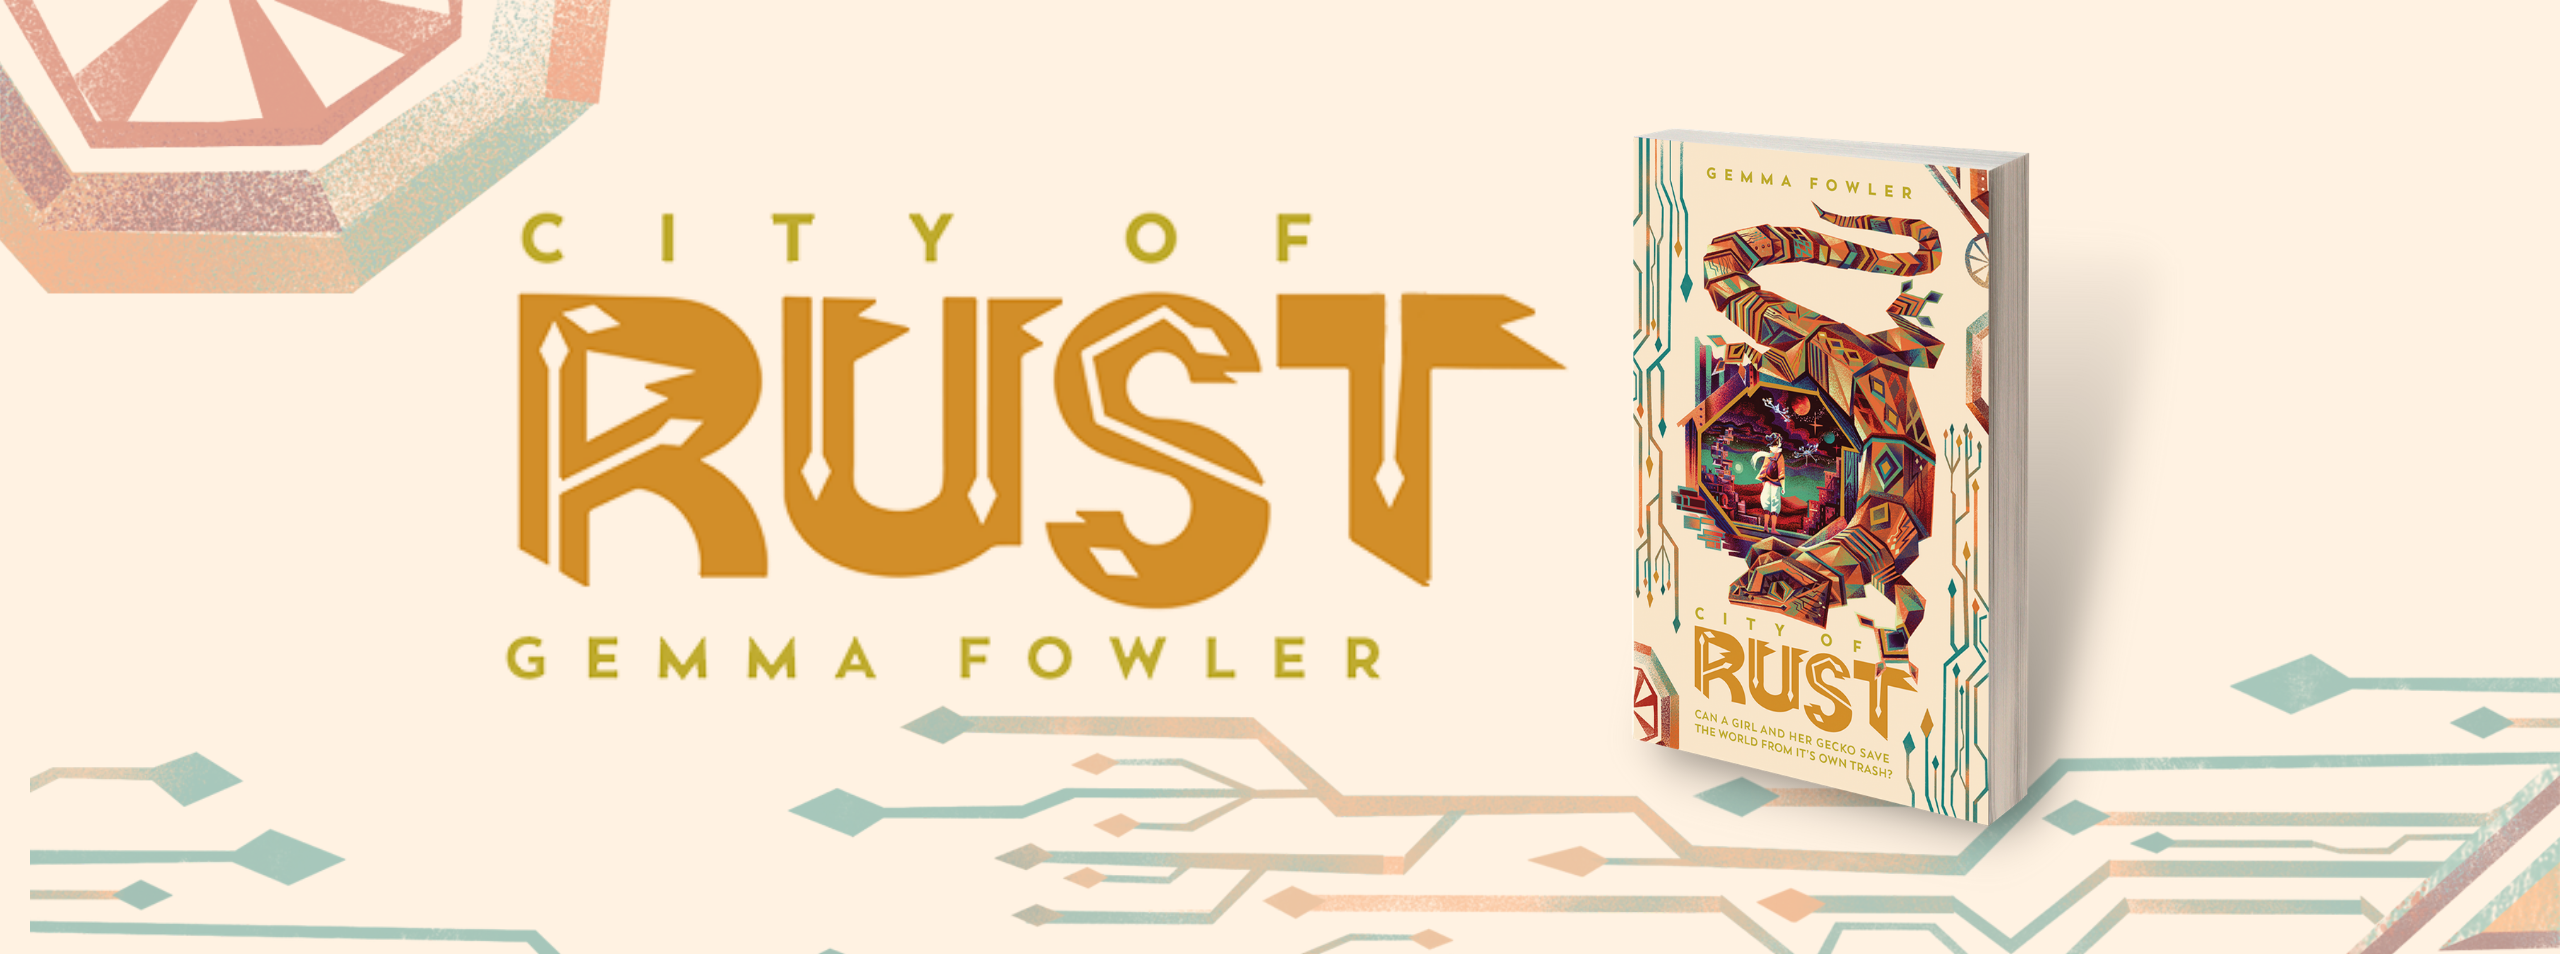 CITY OF RUST by Gemma Fowler